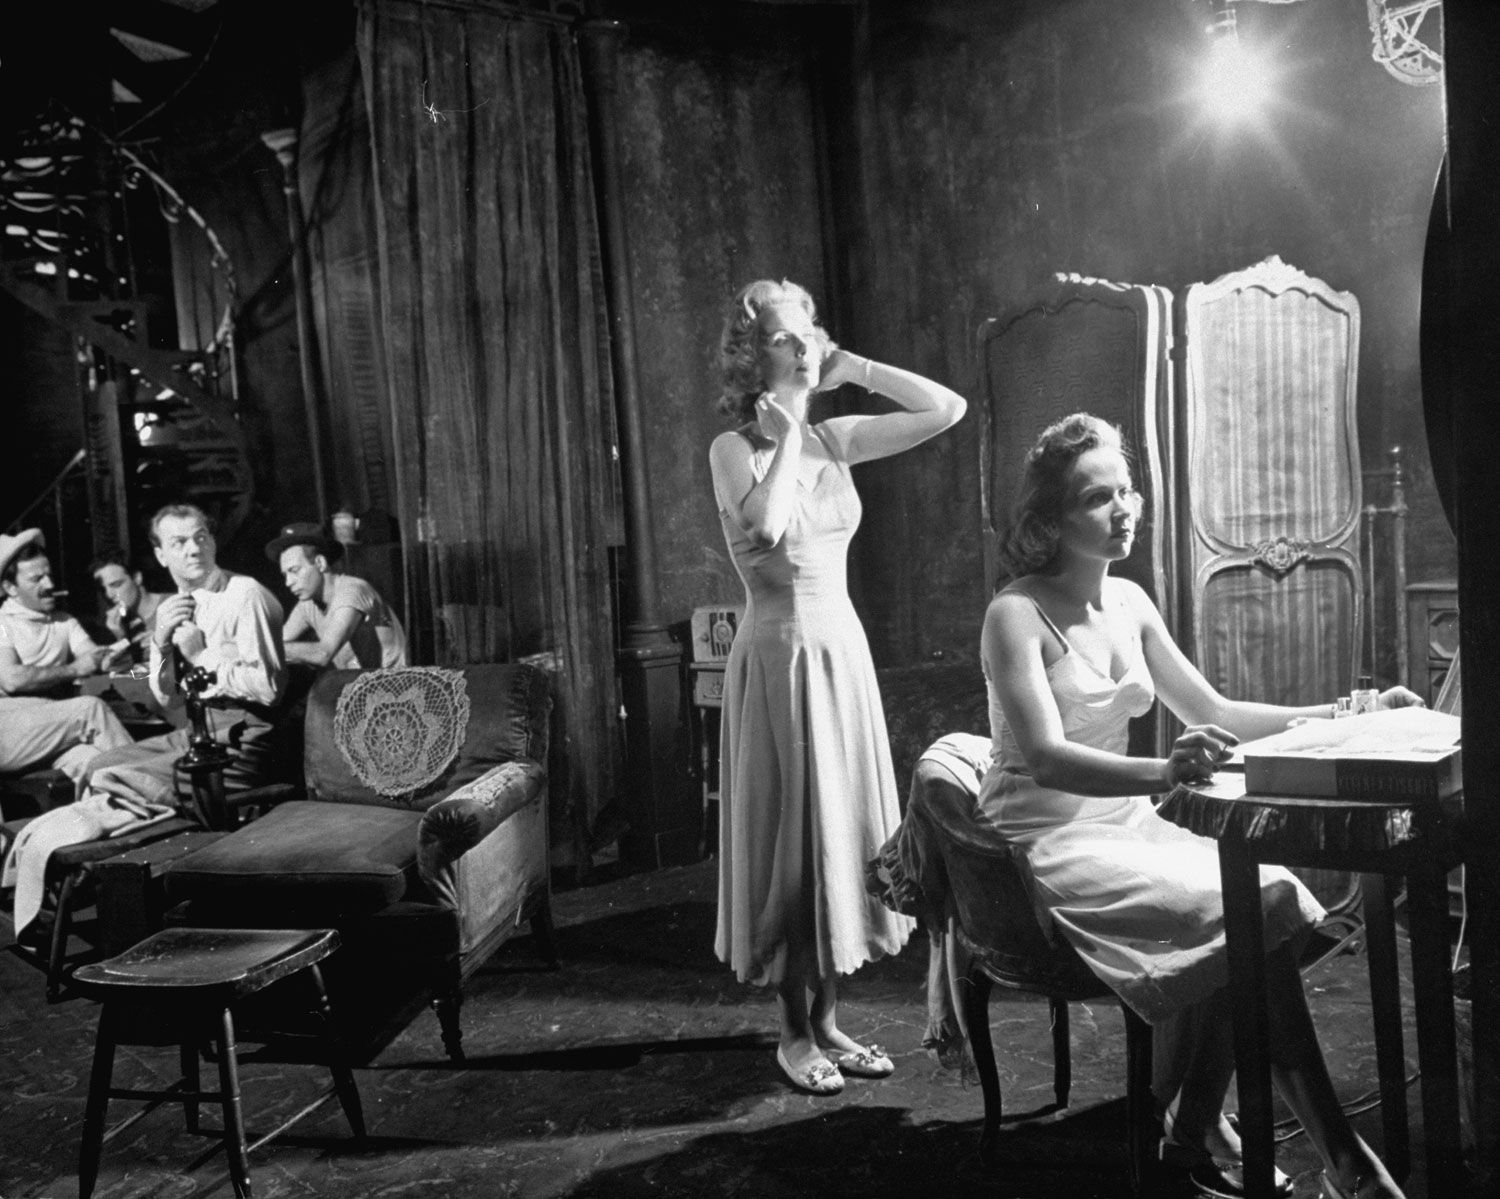 brando takes broadway life on the set of a streetcar d brando takes broadway life on the set of a streetcar d desire in